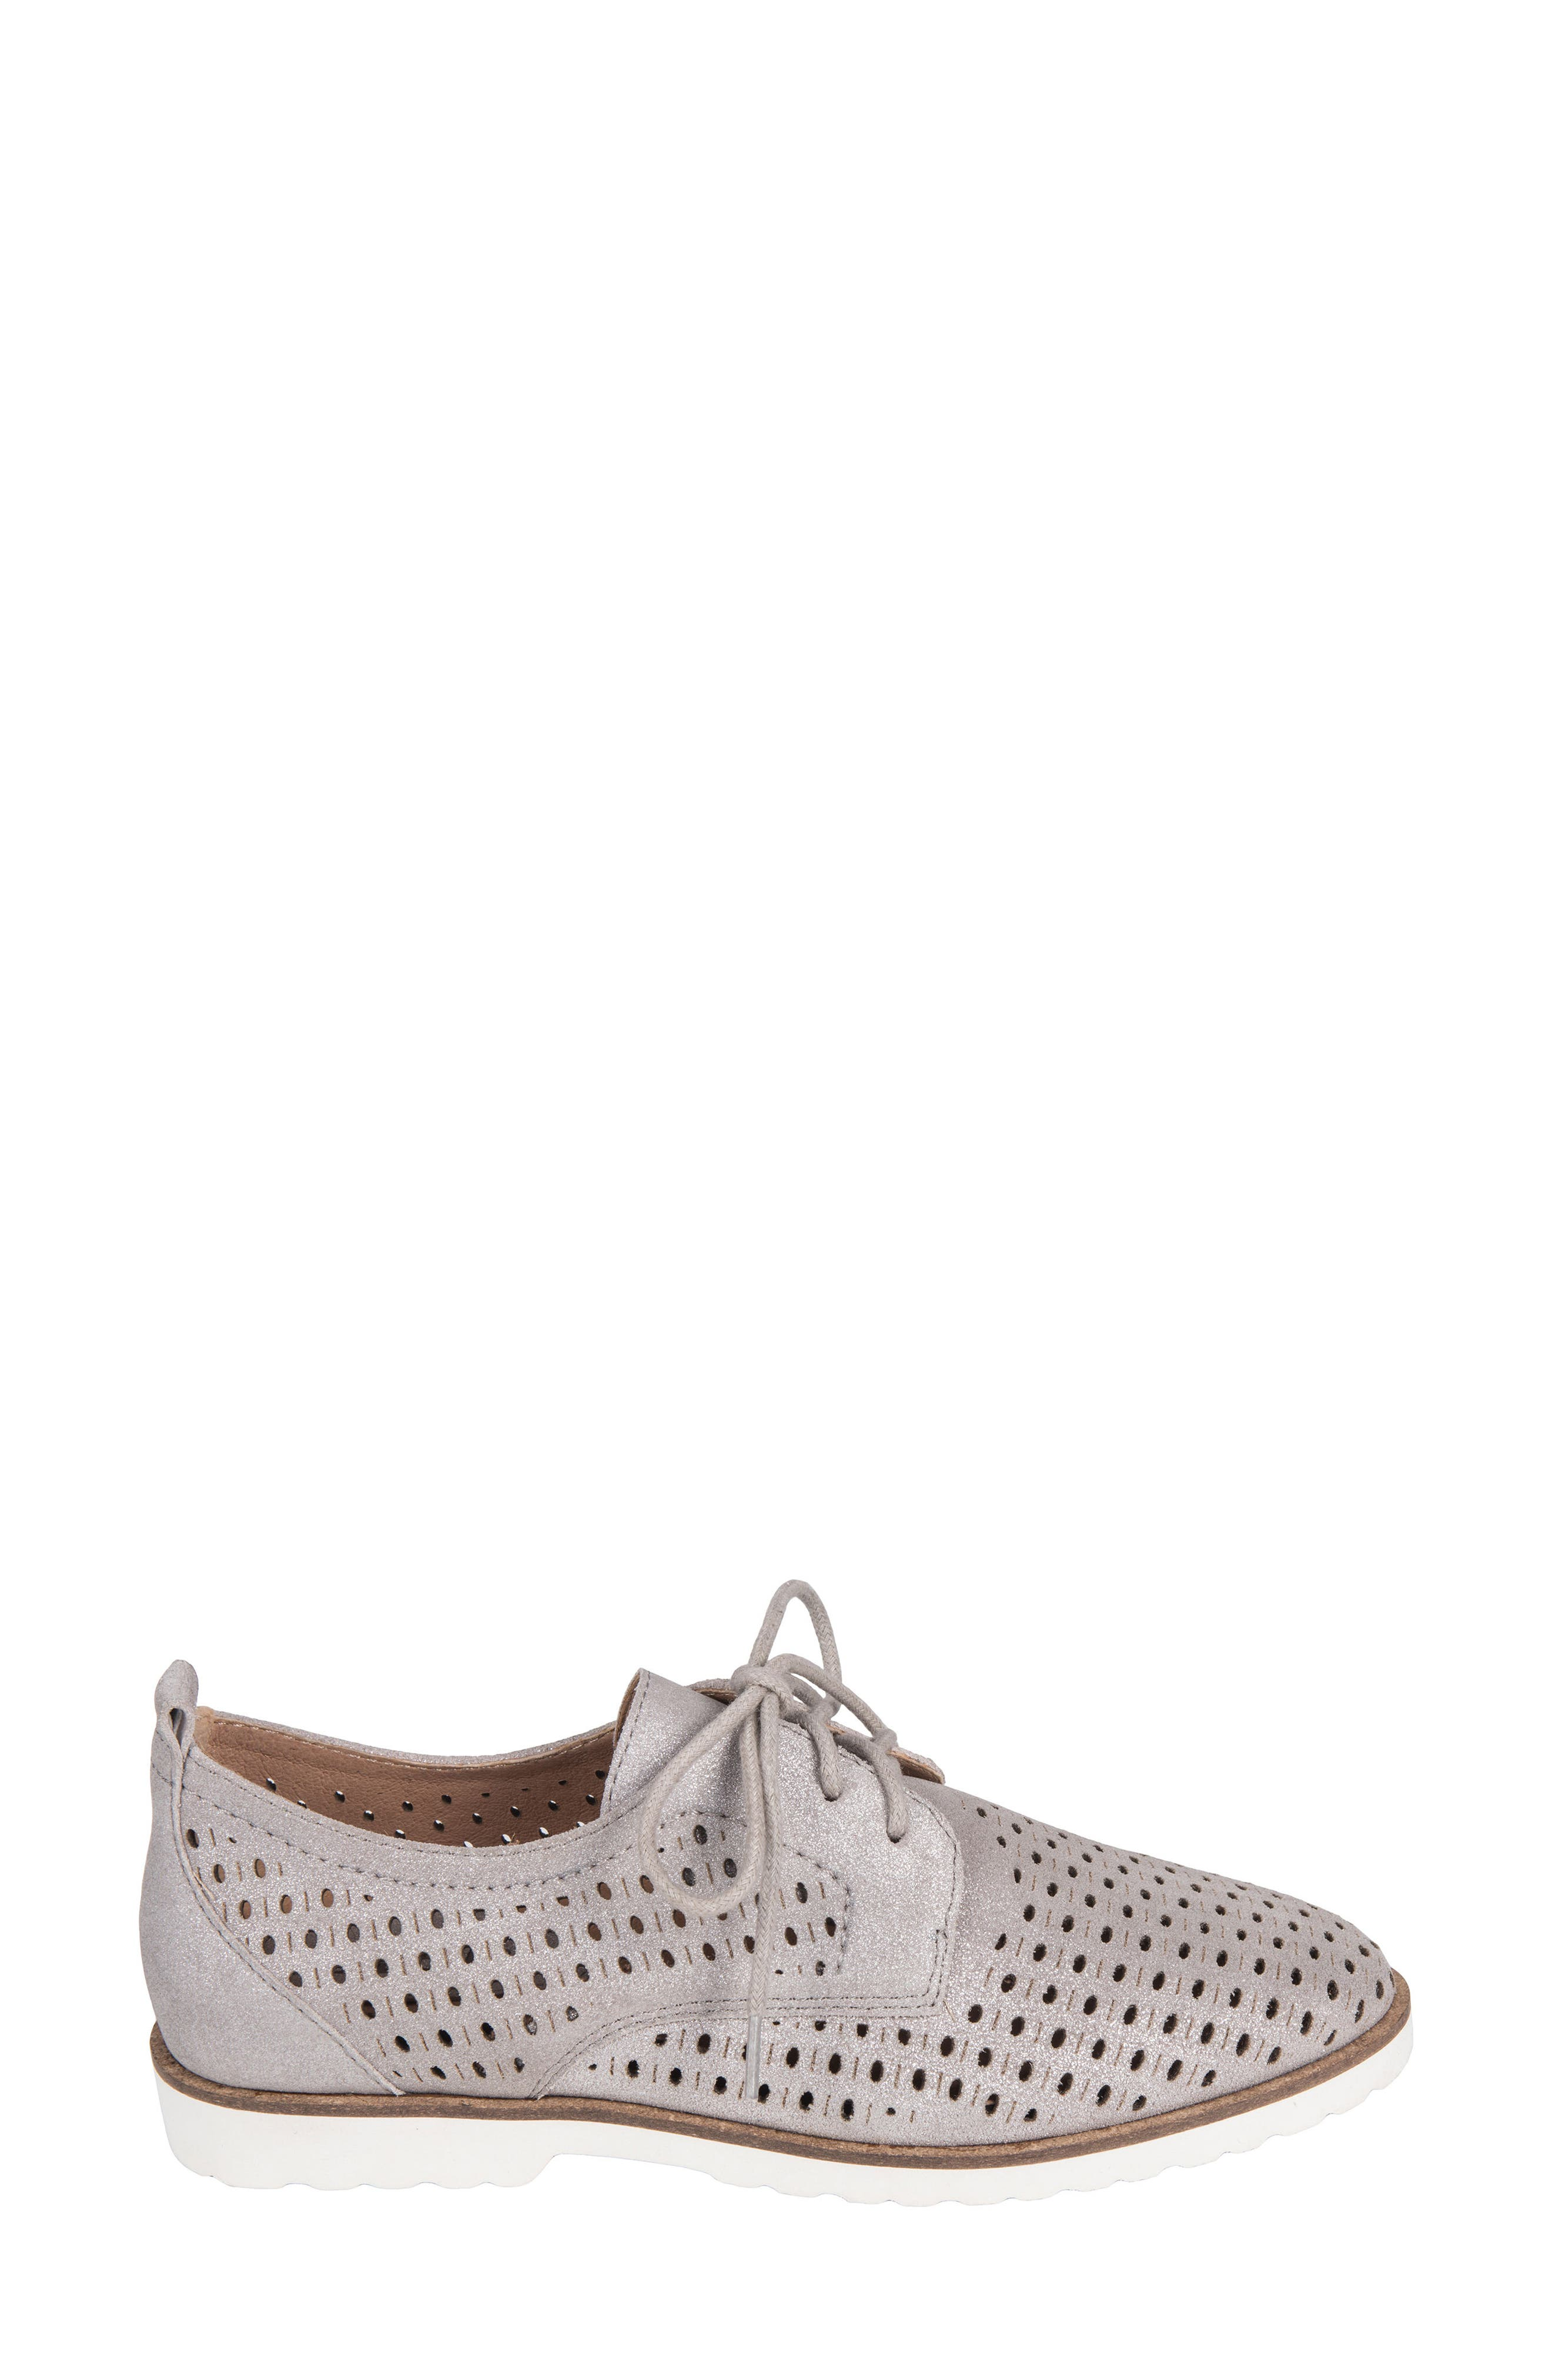 Camino Perforated Sneaker,                             Alternate thumbnail 3, color,                             SILVER METALLIC SUEDE